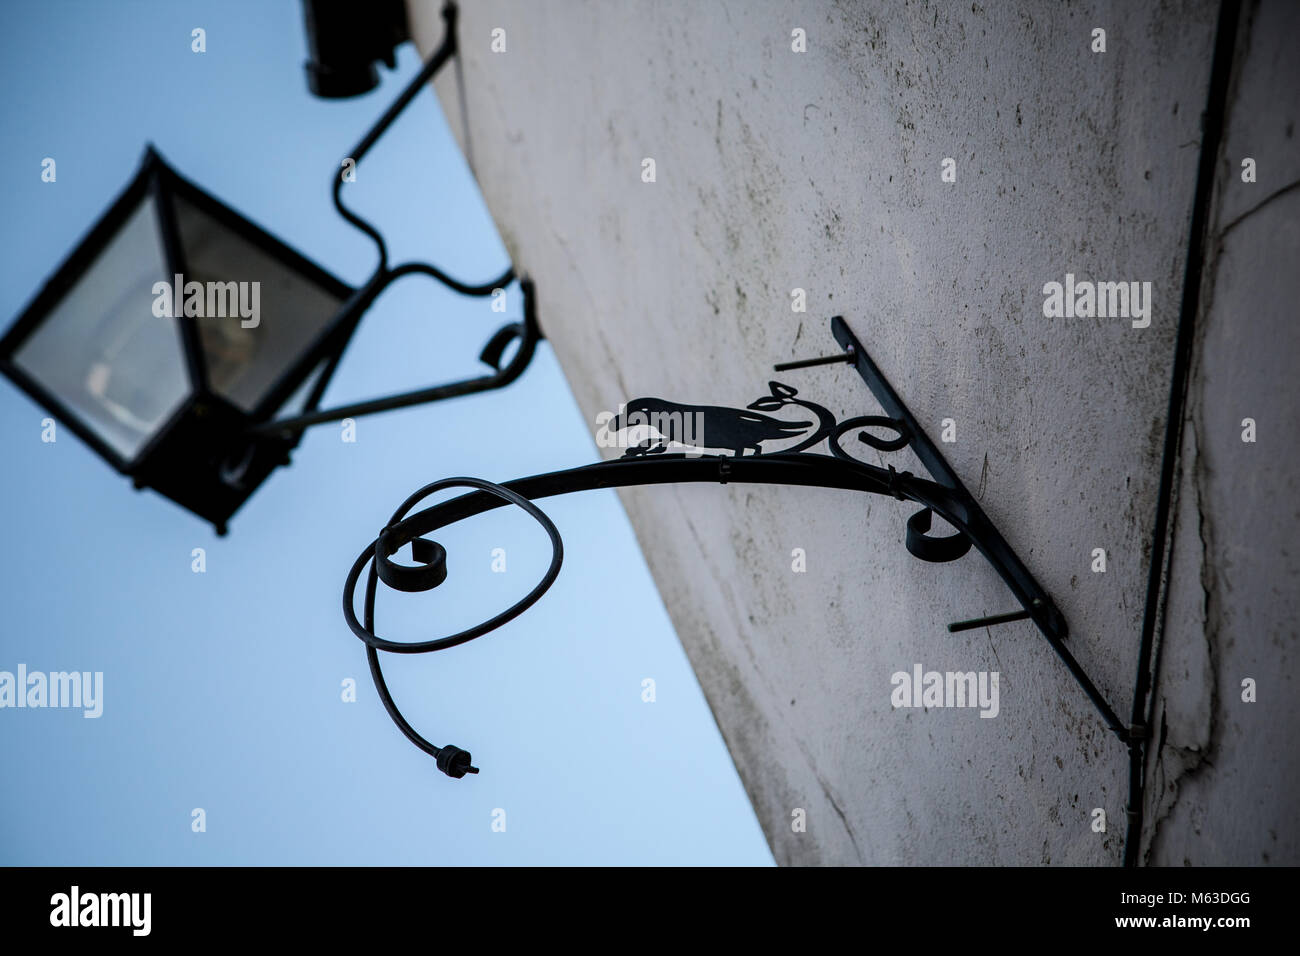 Old Victorian street lamp against blue sky in Deddington, England - Stock Image